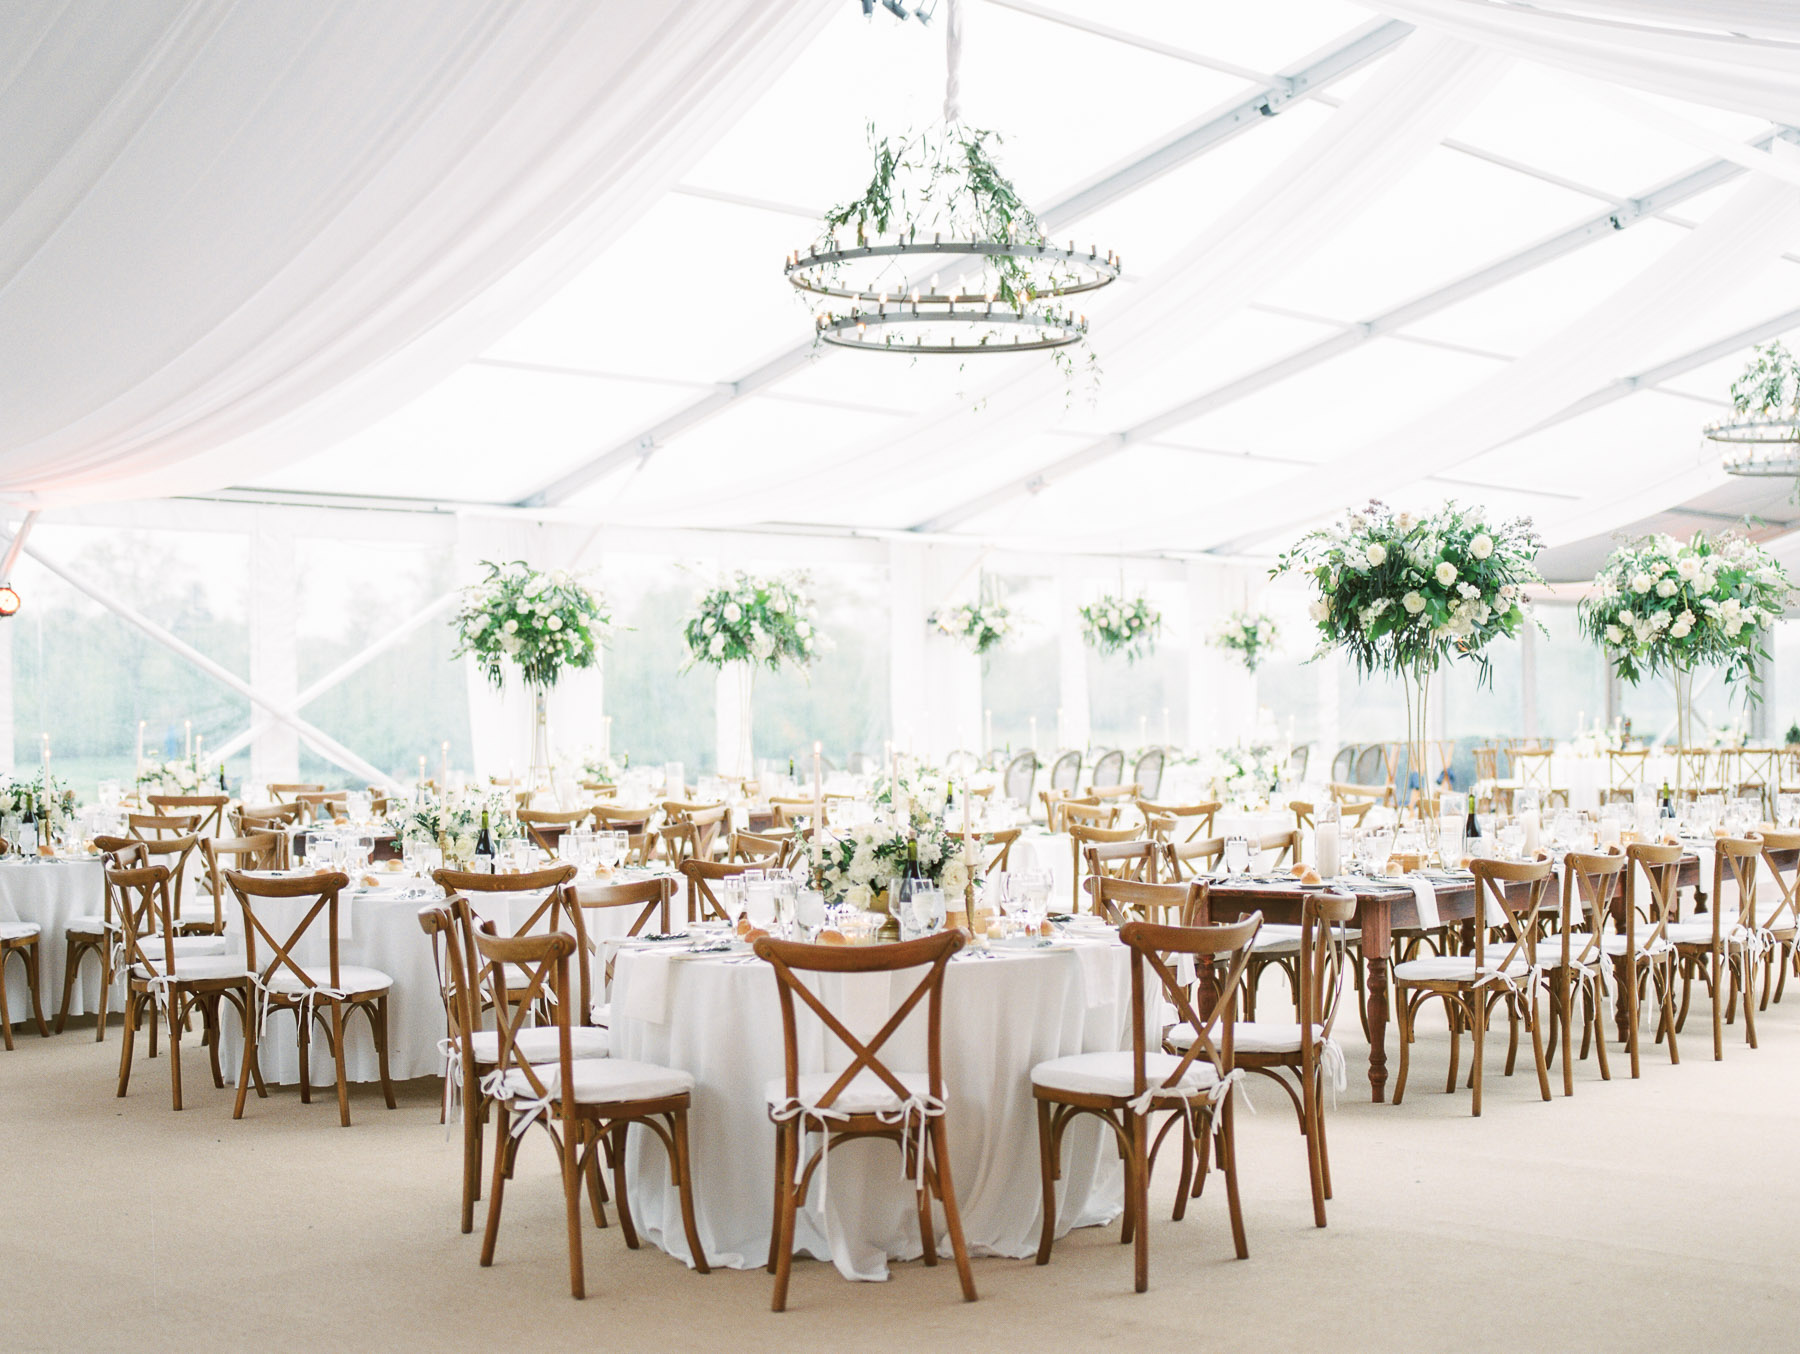 Saratoga National Golf Club Tented Wedding Reception by Renaissance Floral Design